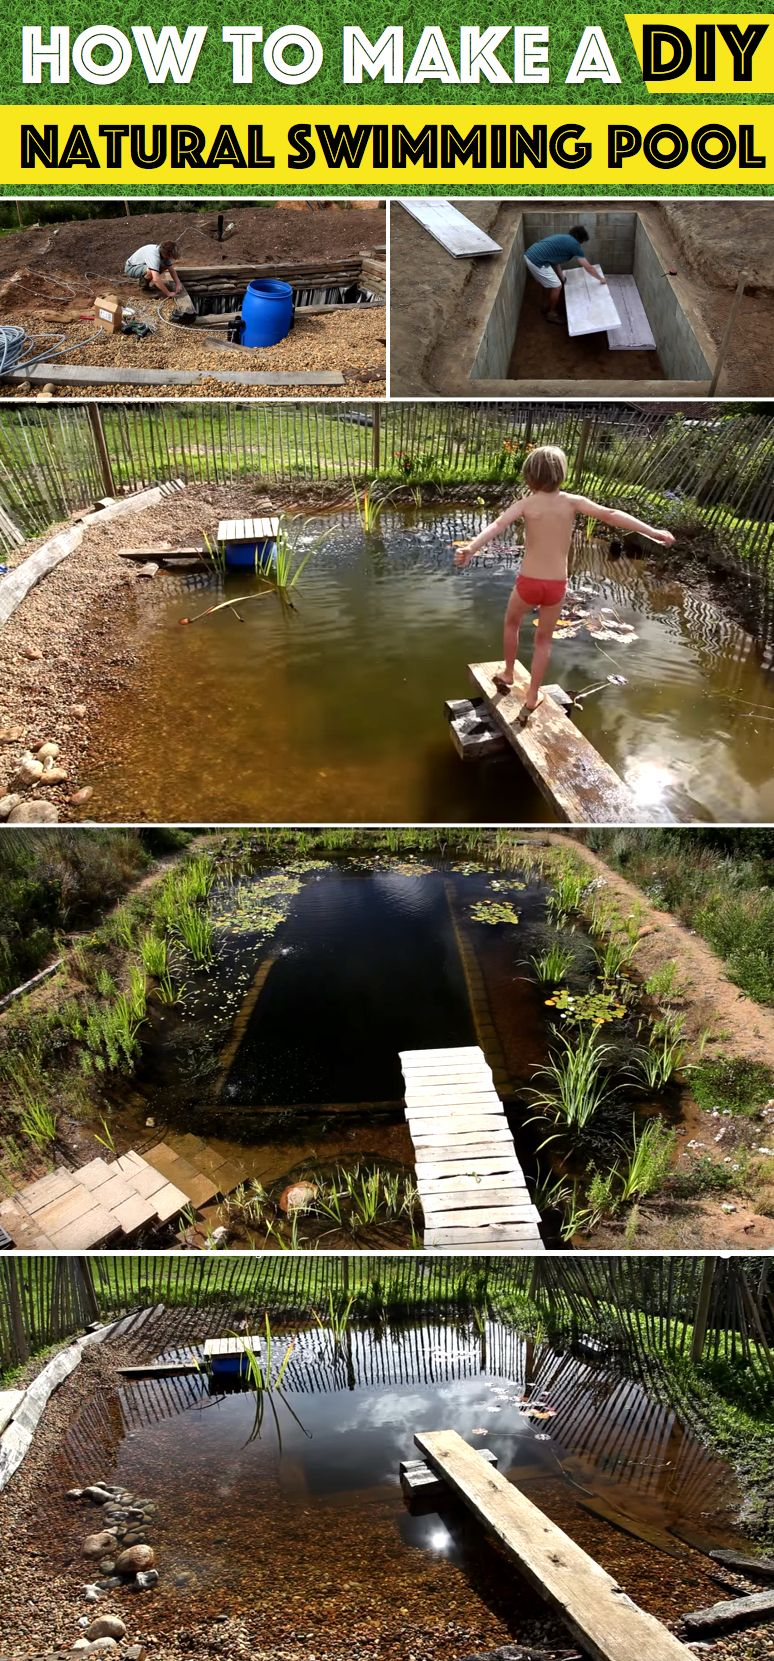 Introduce Unbeatable Charm To Your Backyard With This All Natural Swimming Pond Natural Swimming Ponds Diy Swimming Pool Swimming Pond Backyard diy natural pool